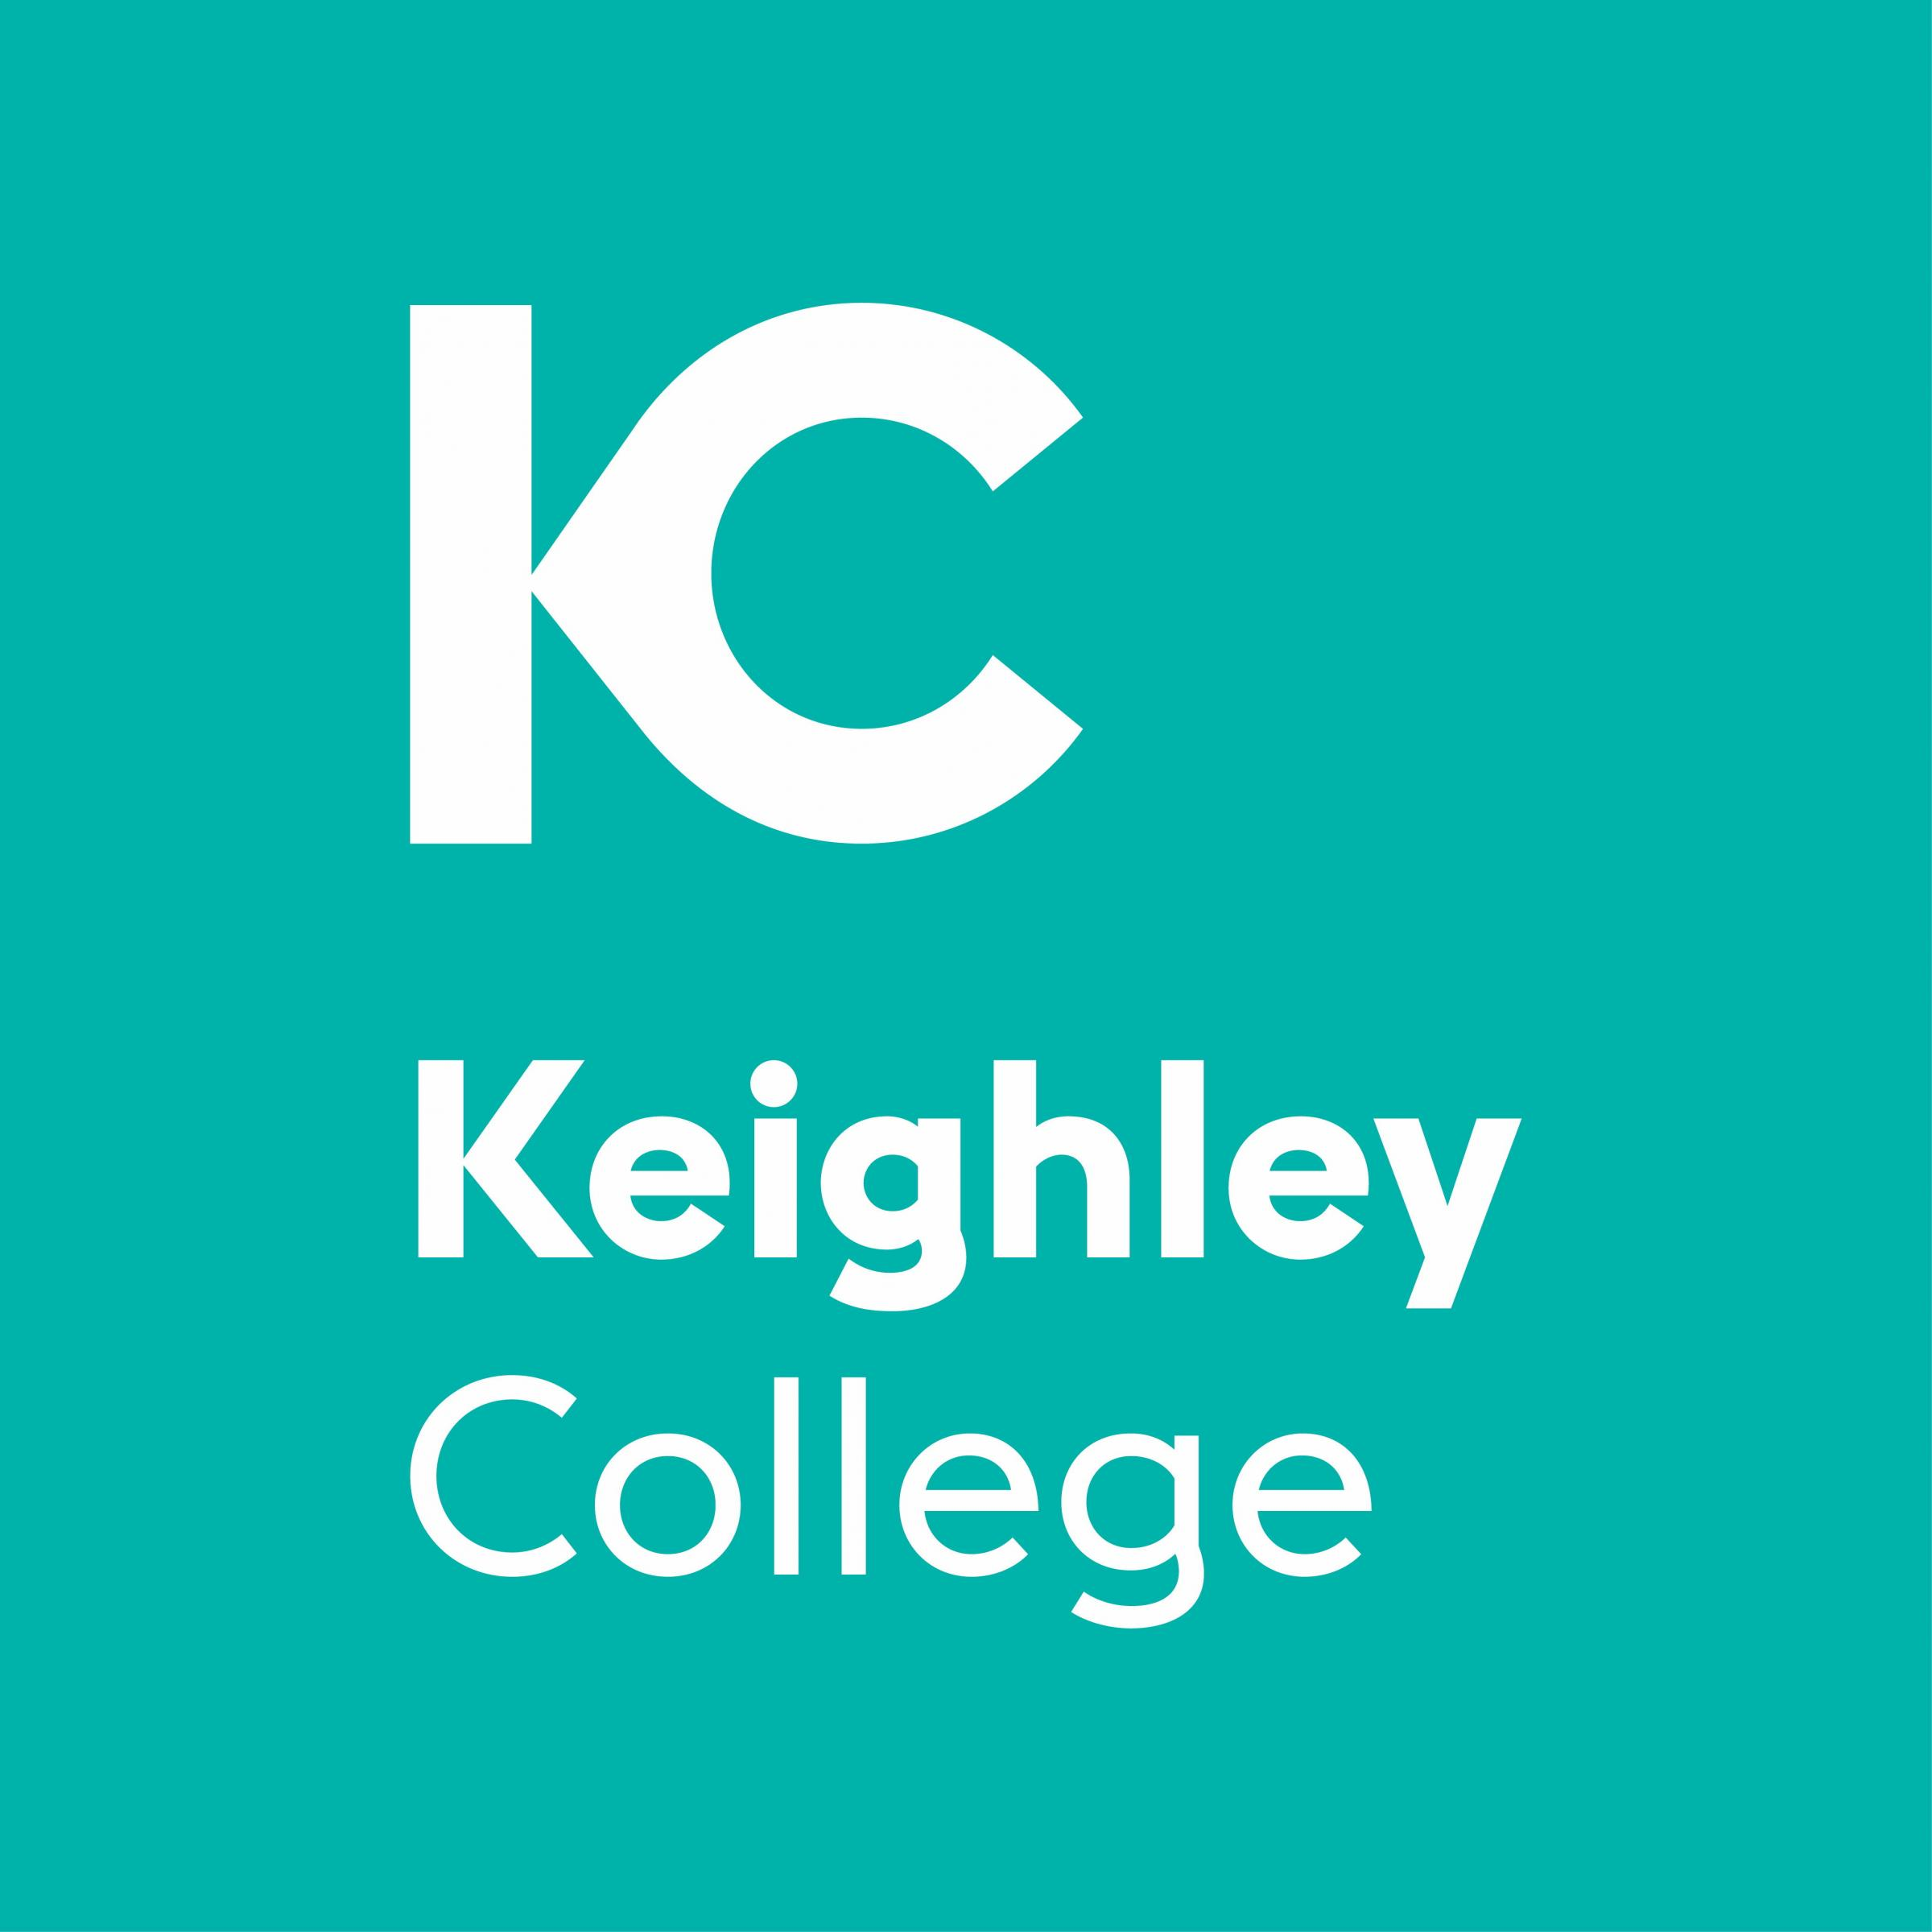 The new Keighley College logo